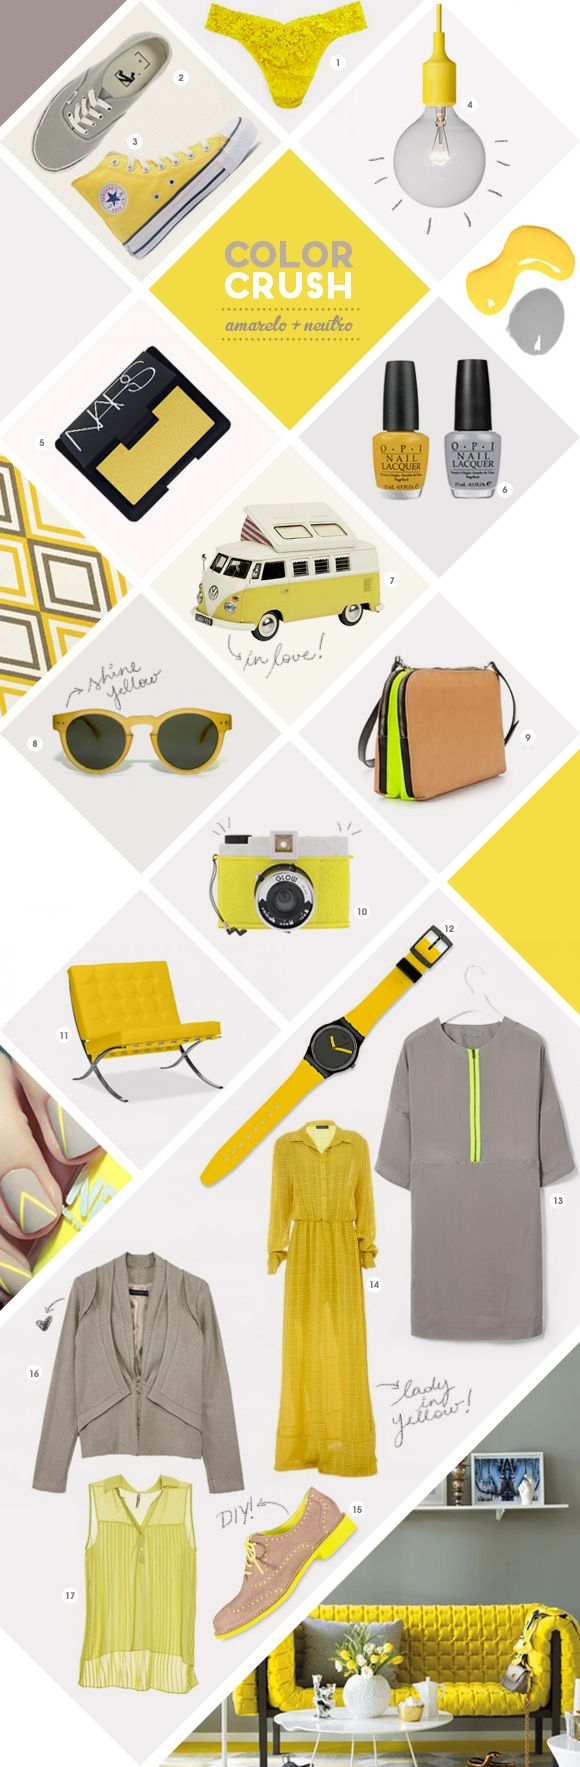 achados-da-bia-color-crush-amarelo-neutro